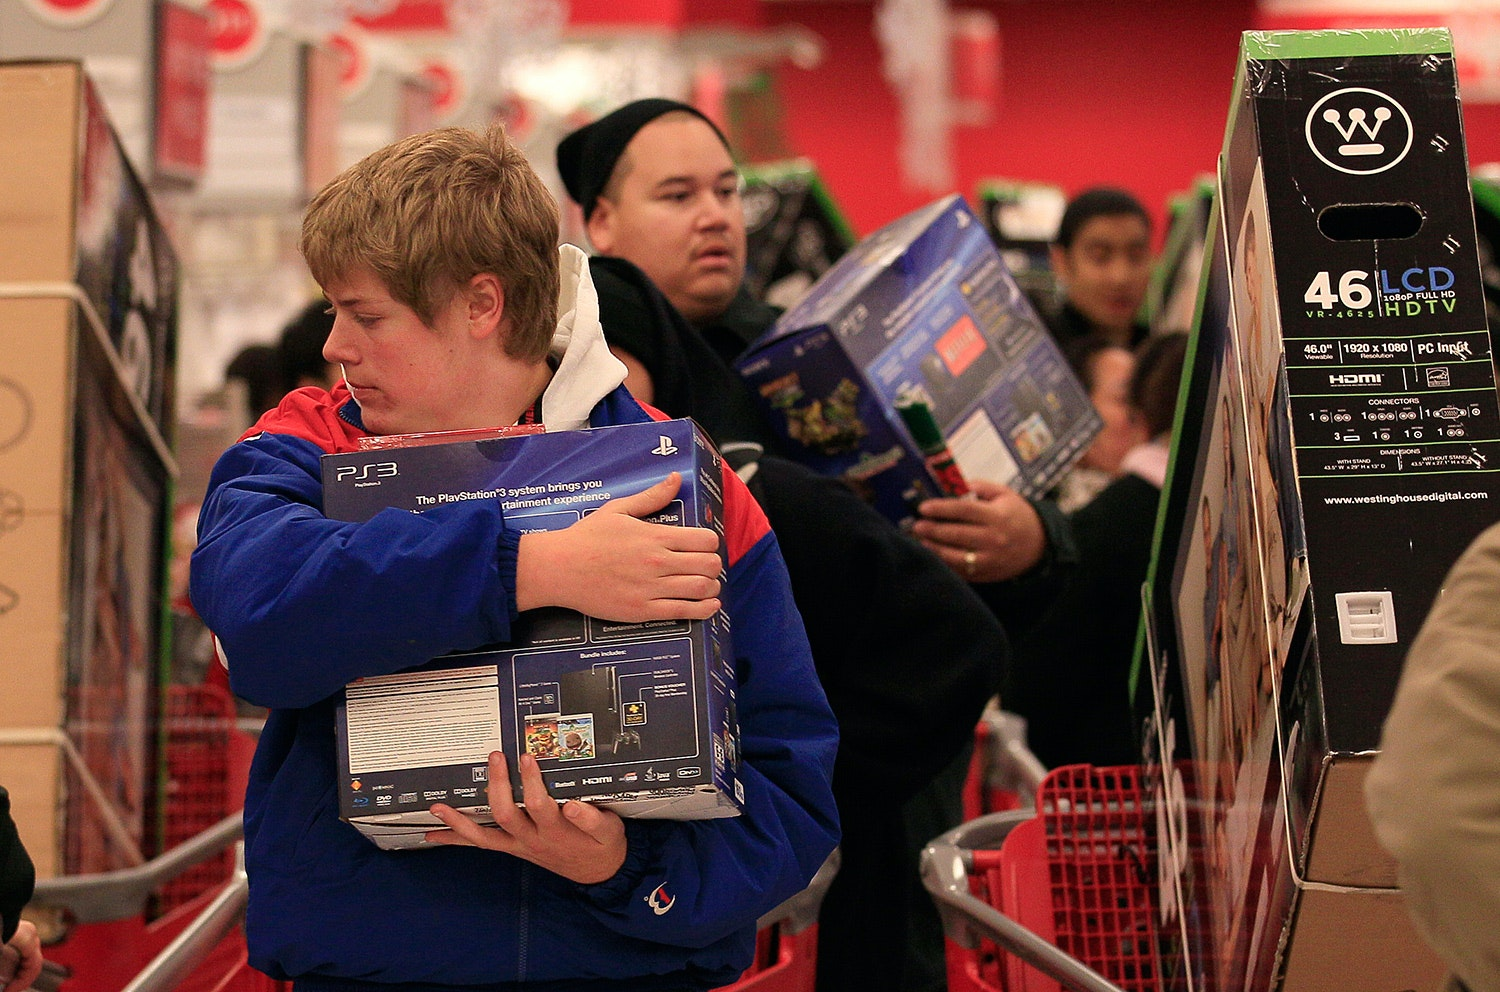 Why do Black Friday shoppers throw punches over bargains? A marketing expert explains 'psychological ownership'